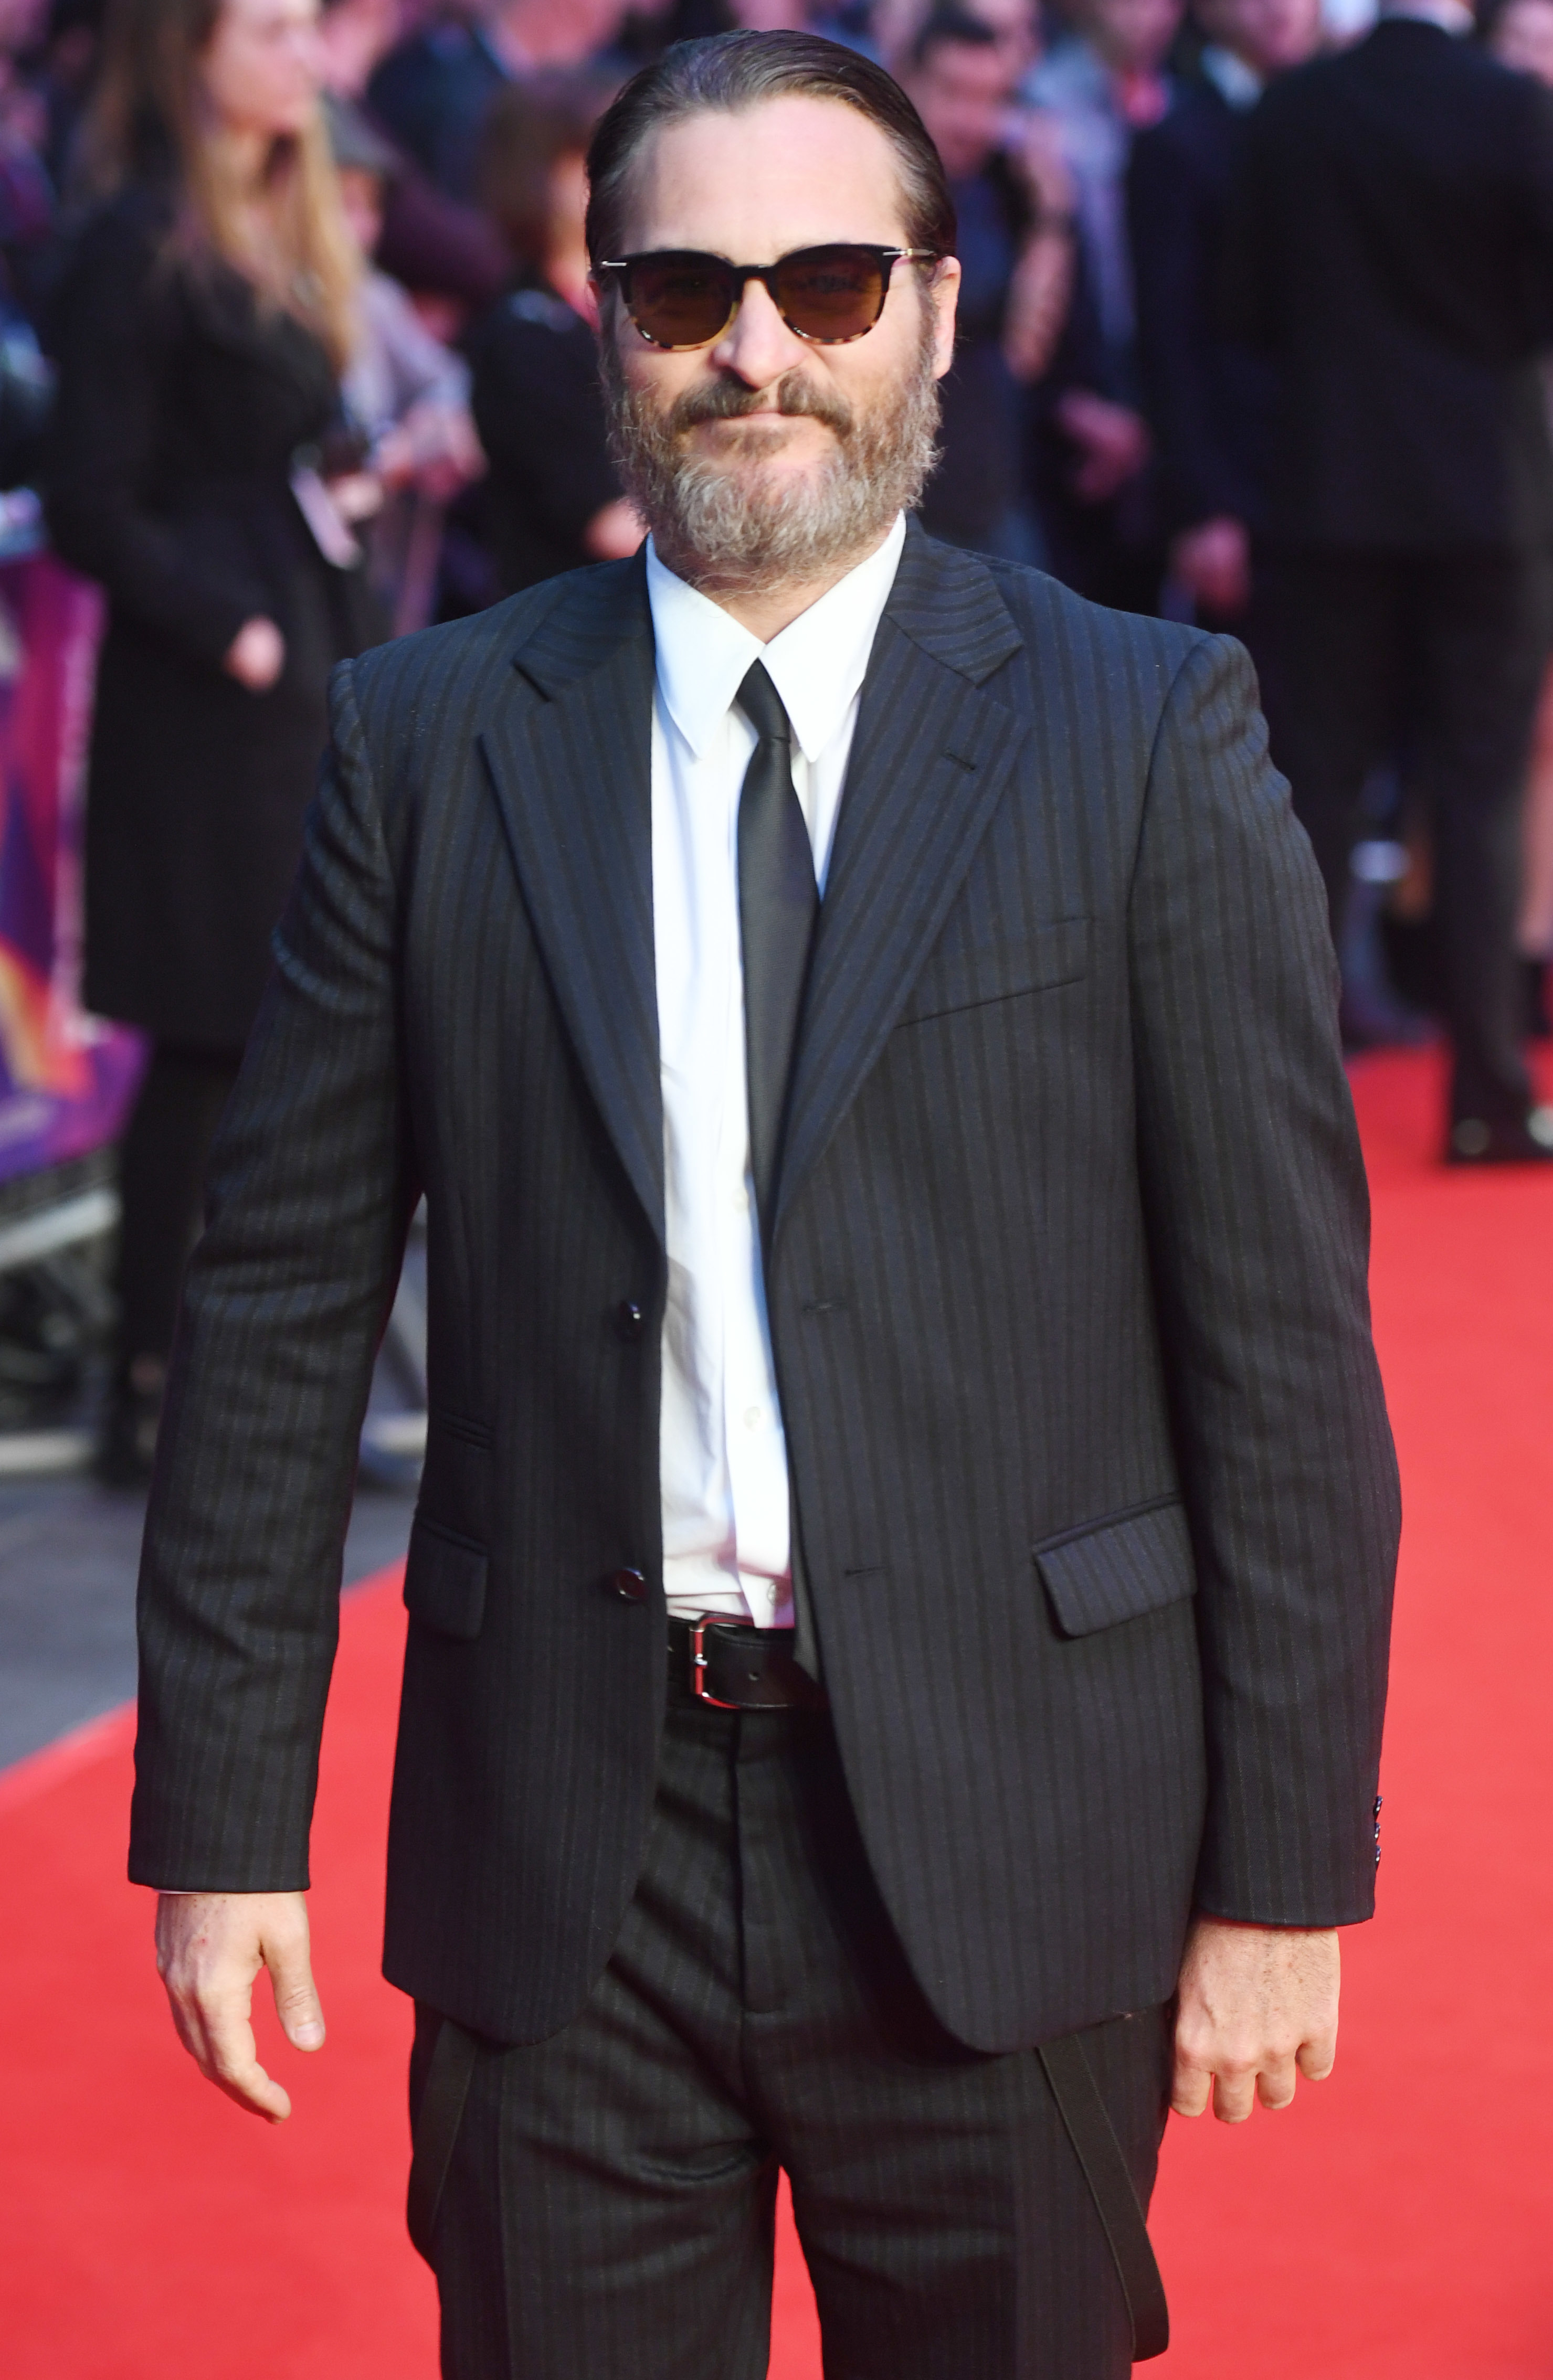 """Joaquin Phoenix attends the BFI London Film Festival premiere of """"You Were Never Really Here"""" at the Odeon Leicester Square in London on Oct. 14, 2017."""